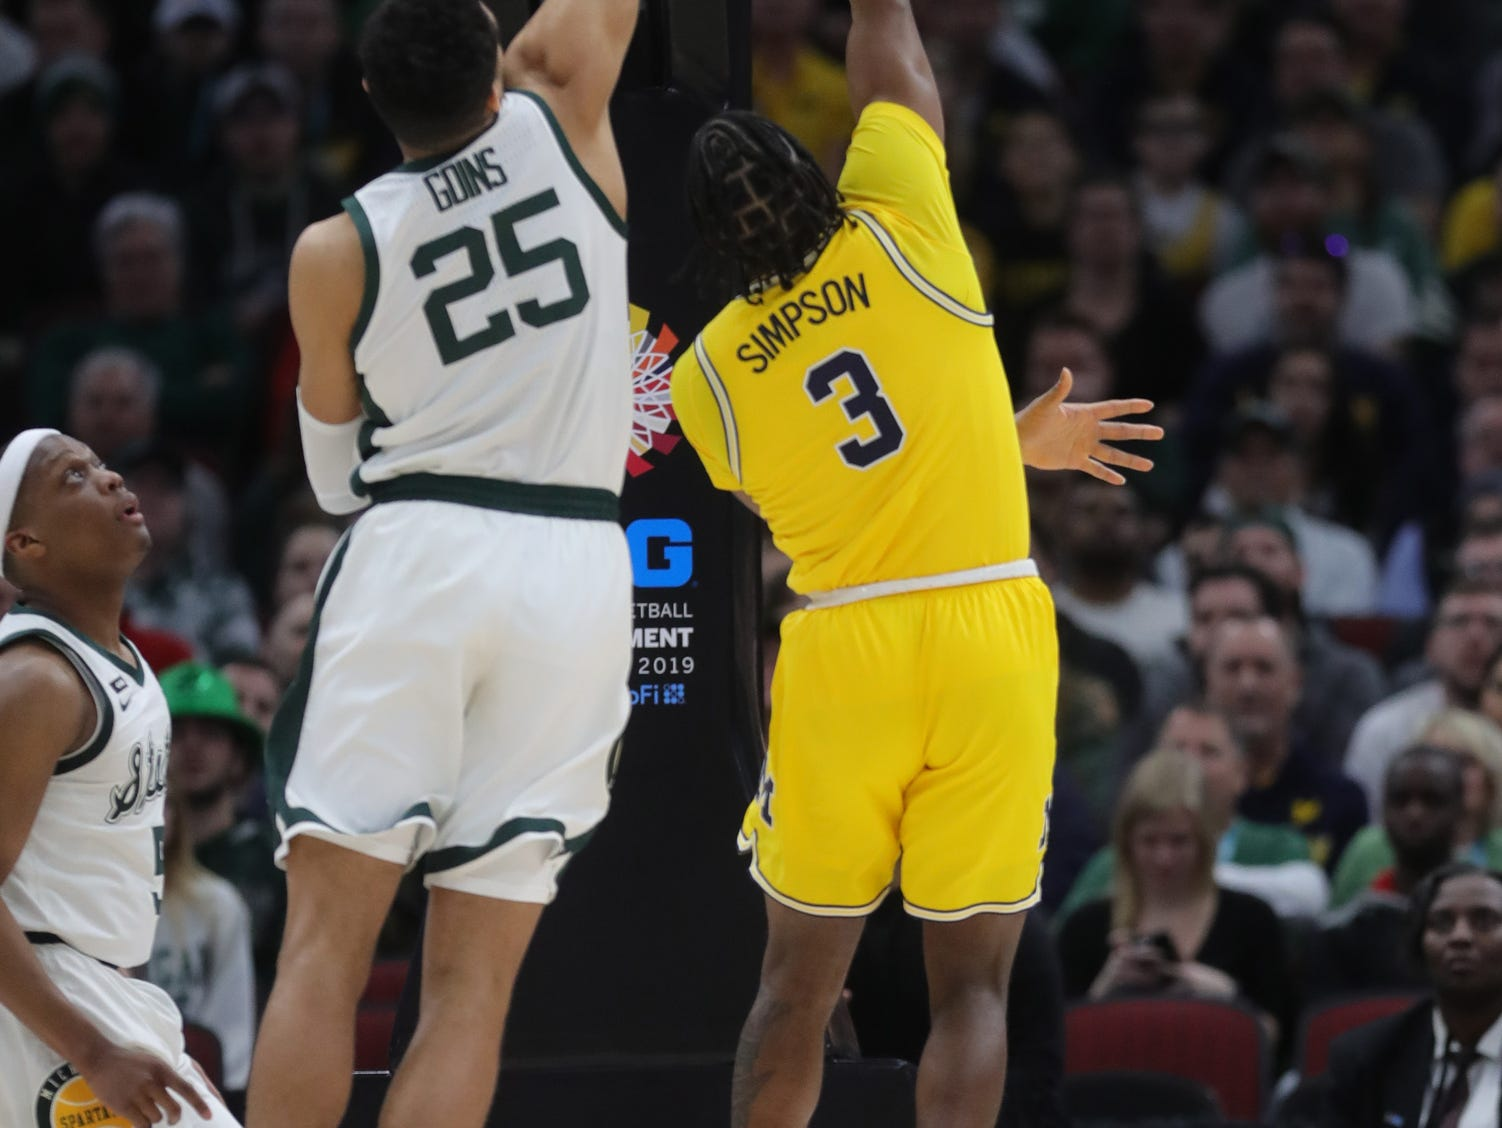 Michigan State's Kenny Goins blocks a shot by Michigan's Zavier Simpson during the first half of the Big Ten tournament championship Sunday, March 17, 2019 in Chicago.